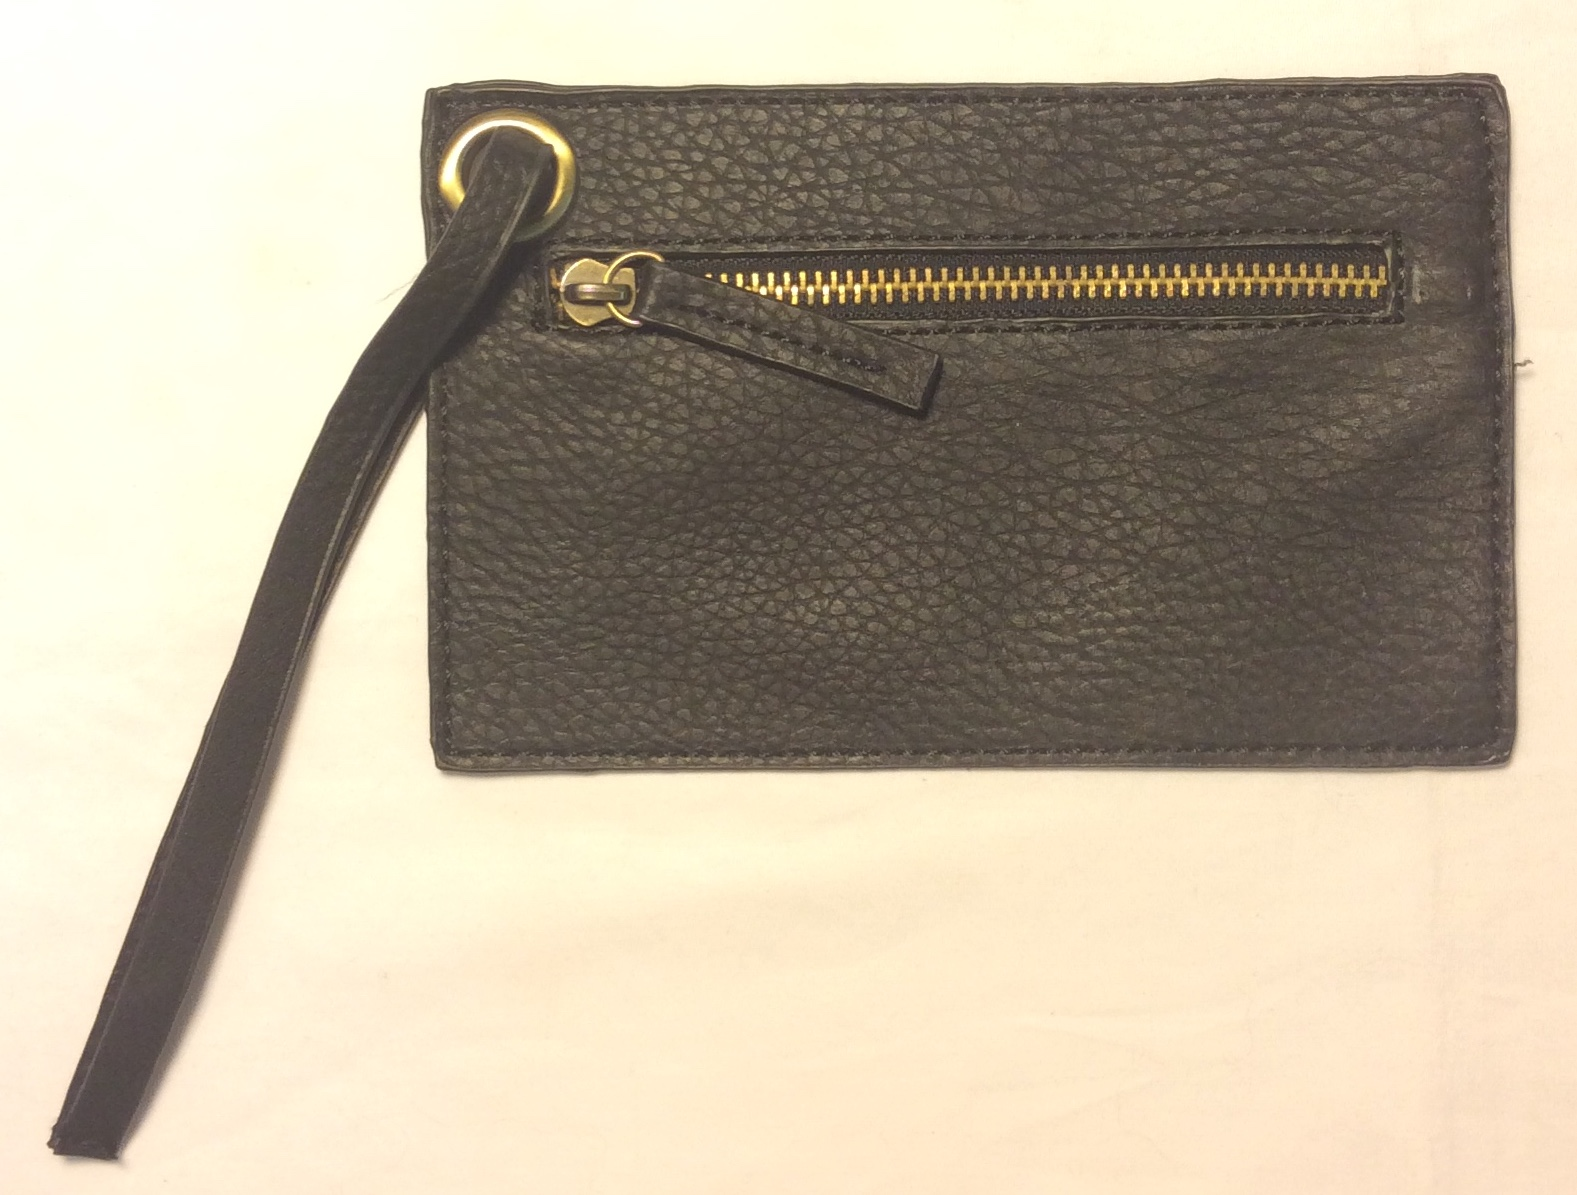 Thin black leather coin purse